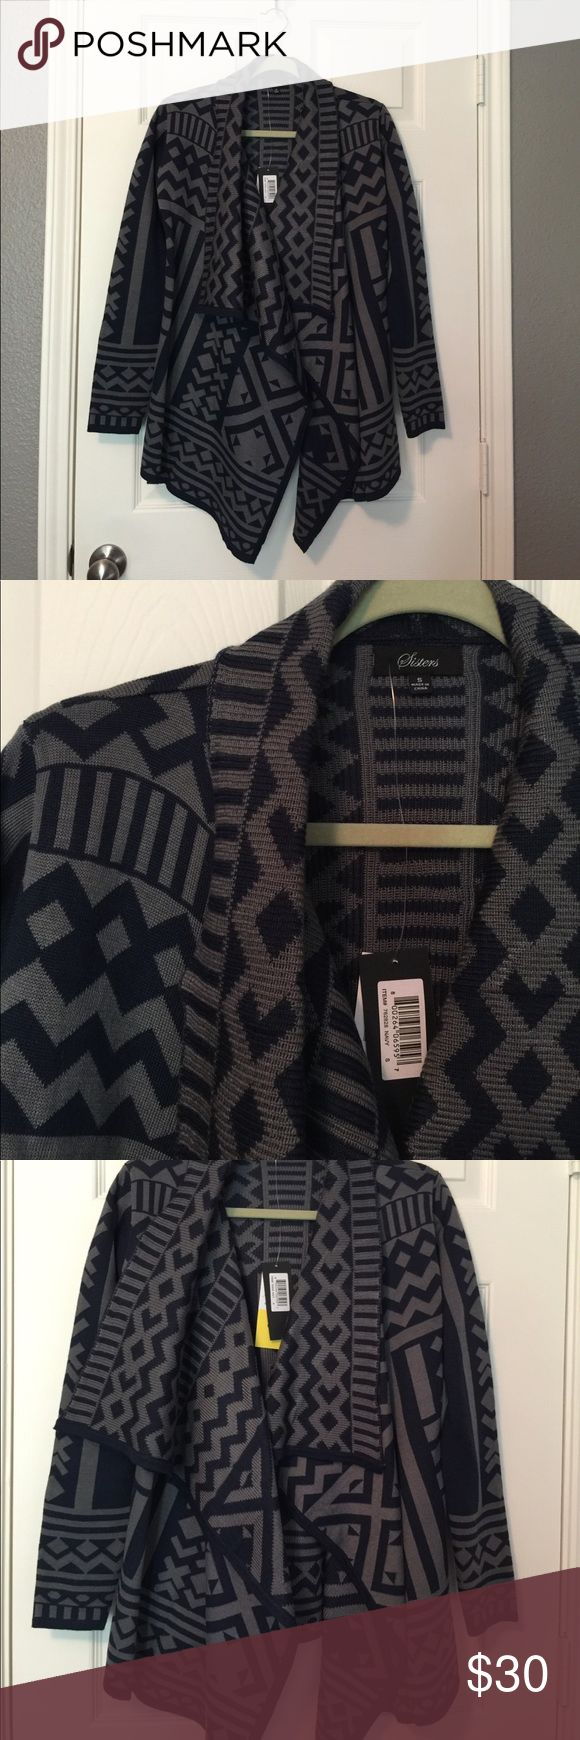 Navy & Grey Aztec Sweater Cardigan Size S This is a brand new super cute Aztec print cardigan with a draped shall collar.  It is from Urban Outfitters but the tag says Sisters on it. From a smoke free home! Urban Outfitters Sweaters Cardigans